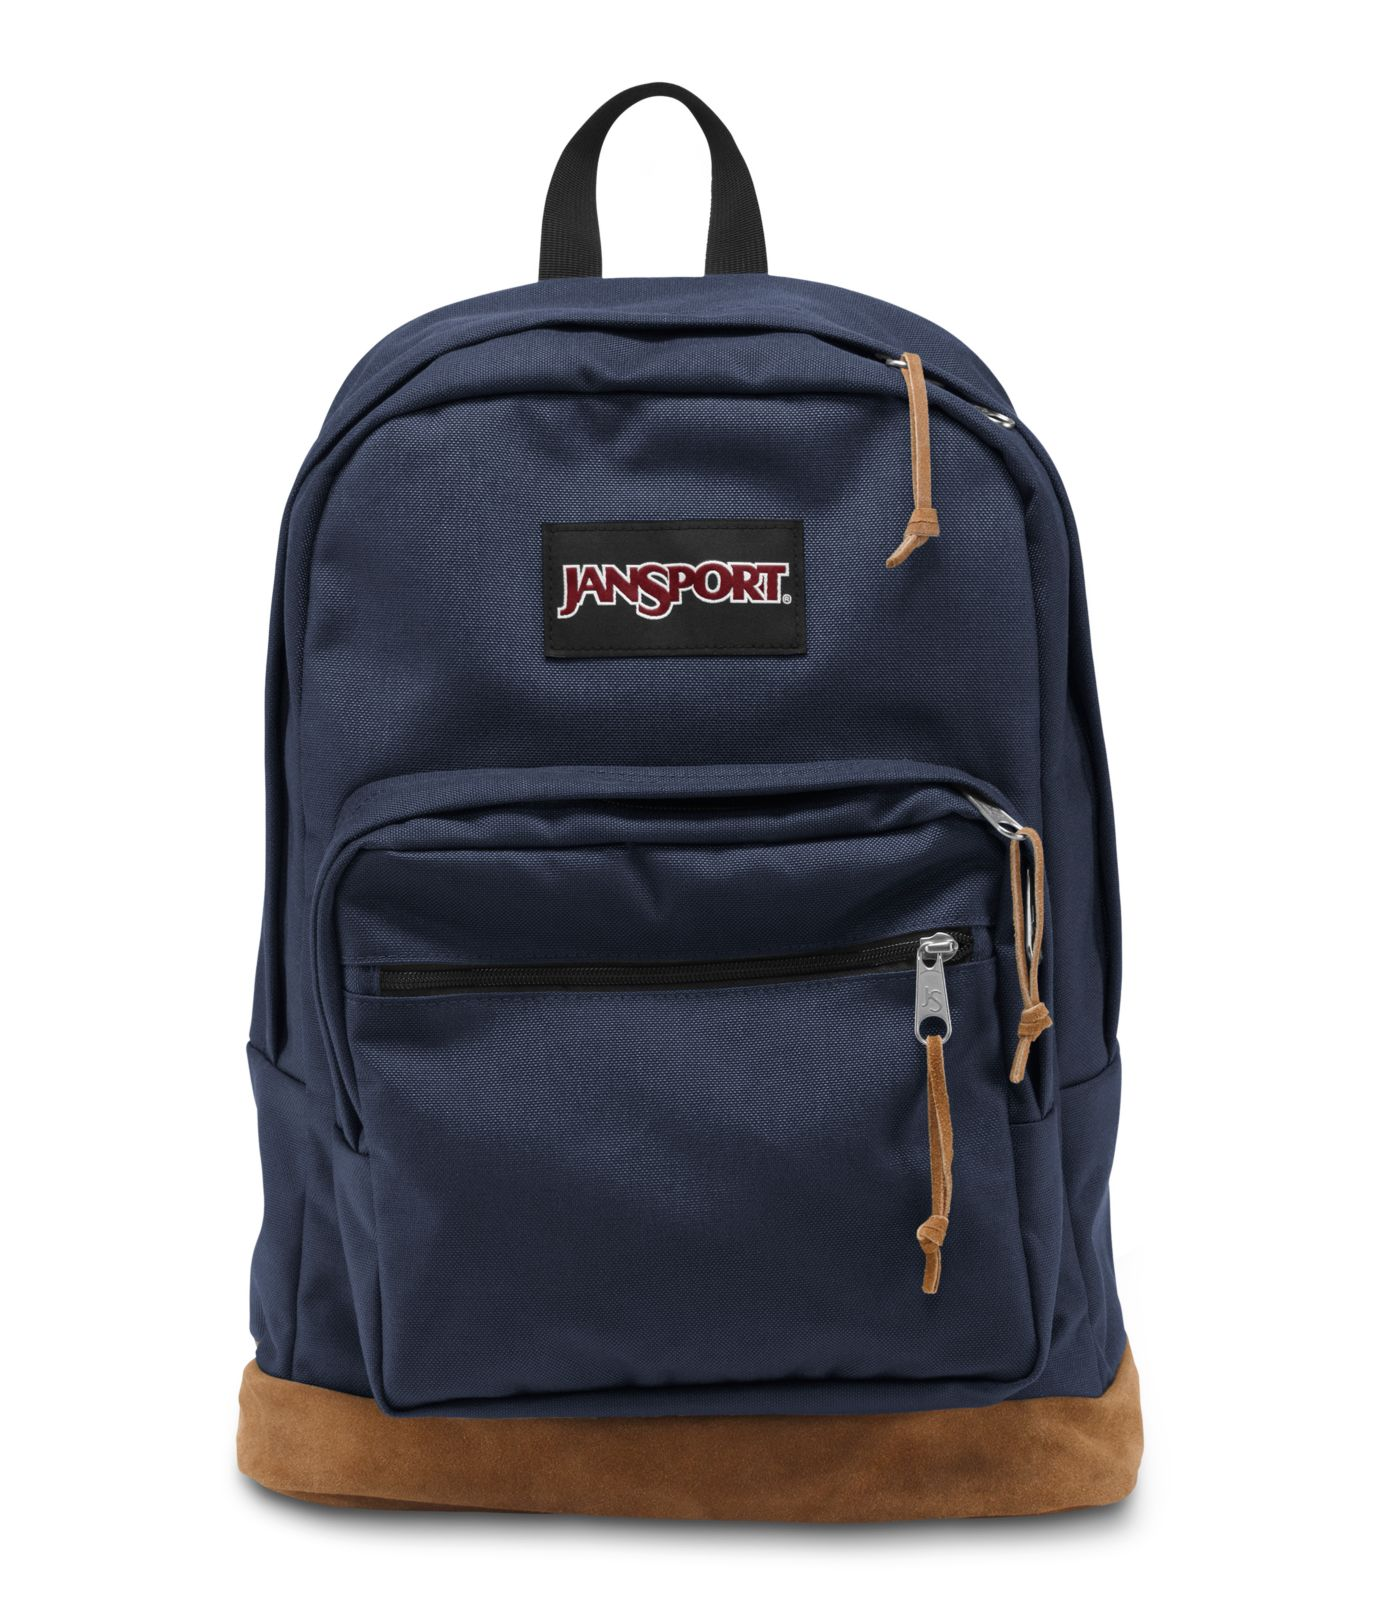 3180c8d3d Our Best Packs For College